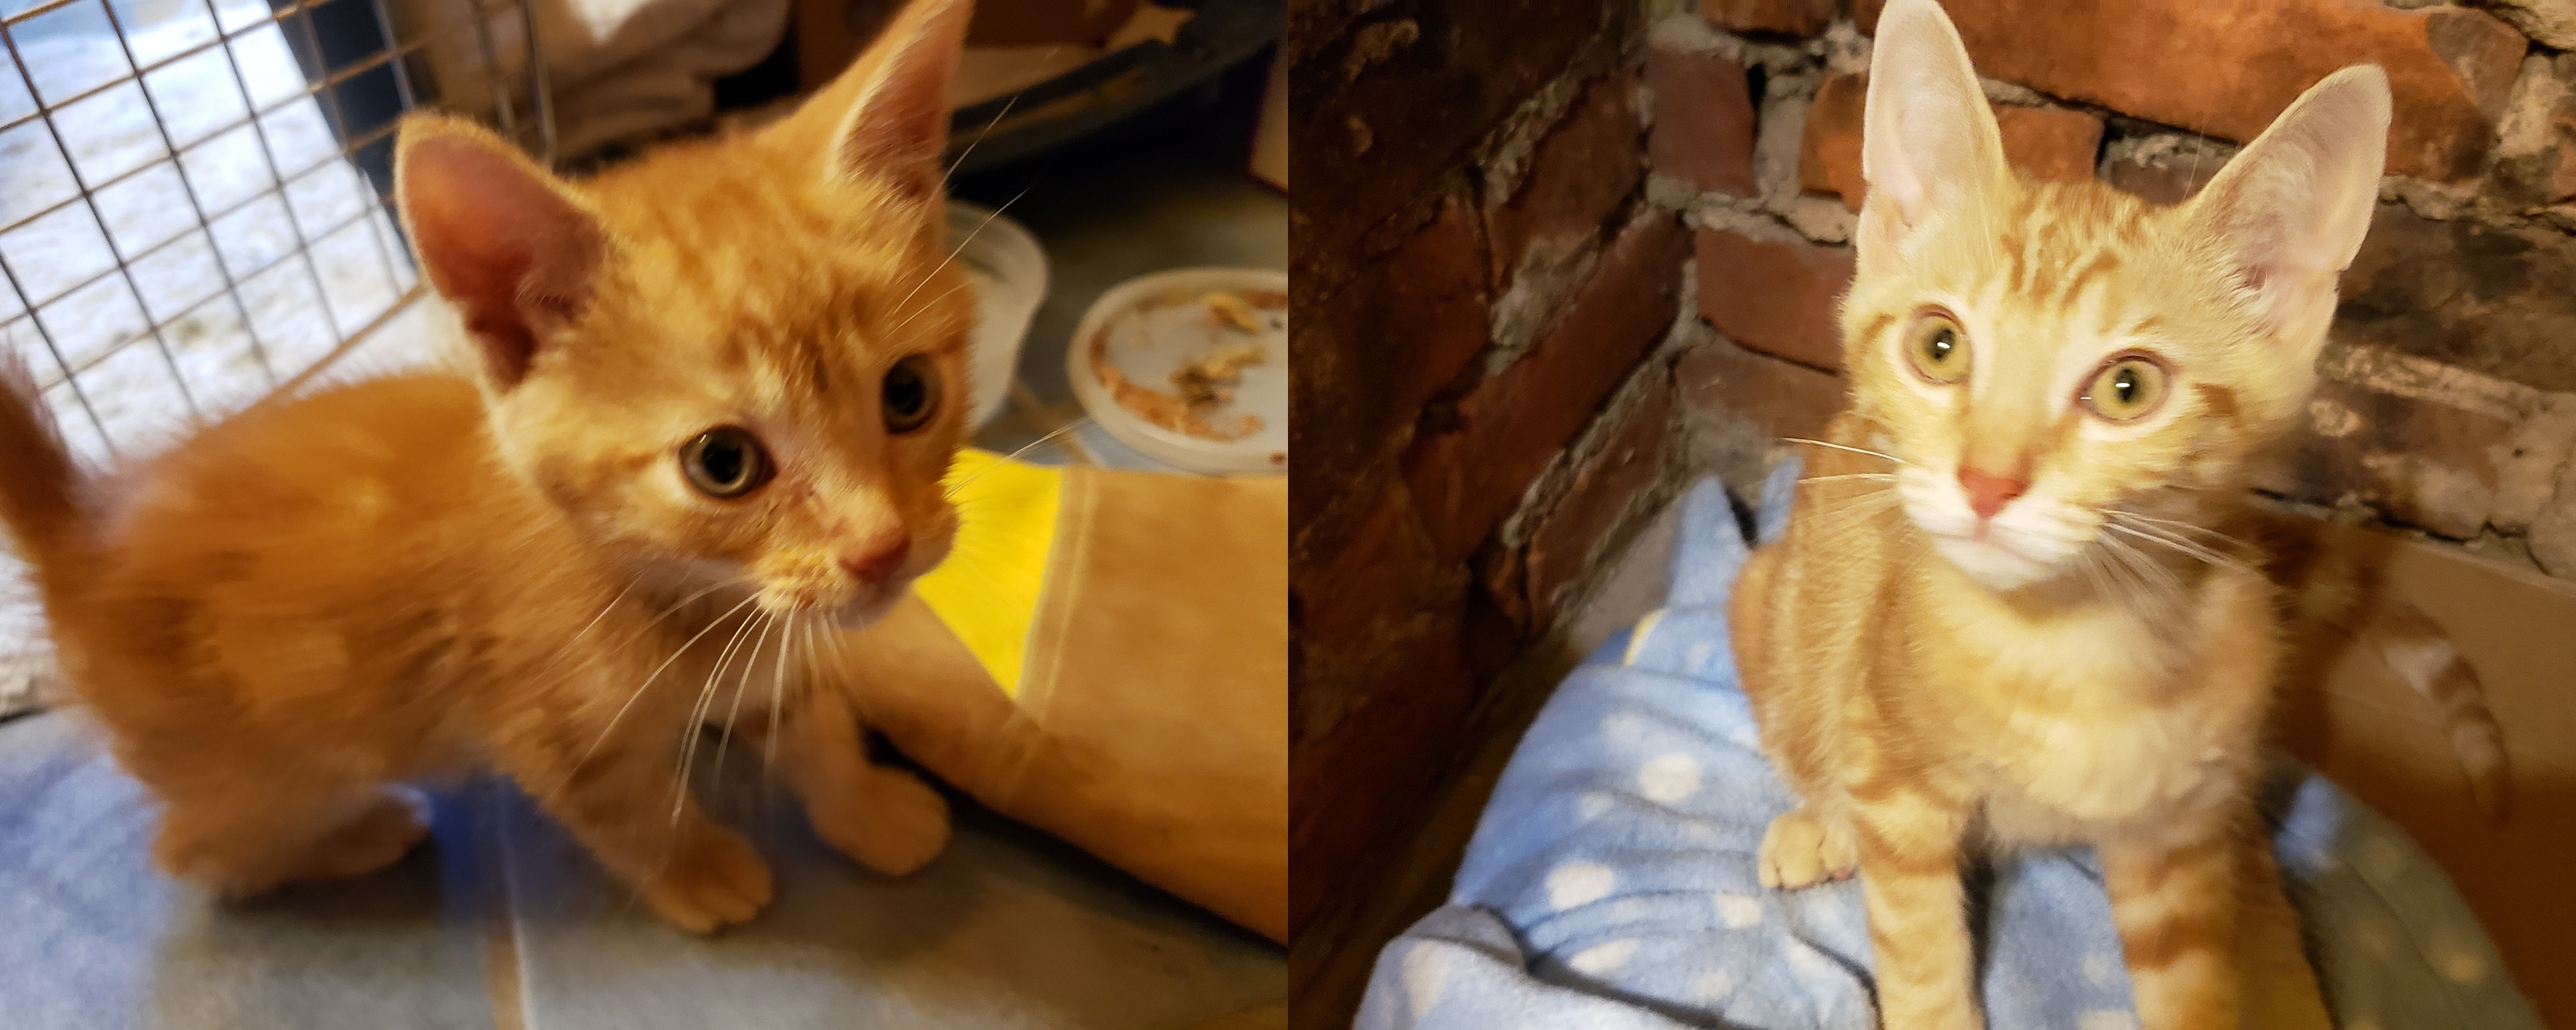 Two photos of an organge tabby cat